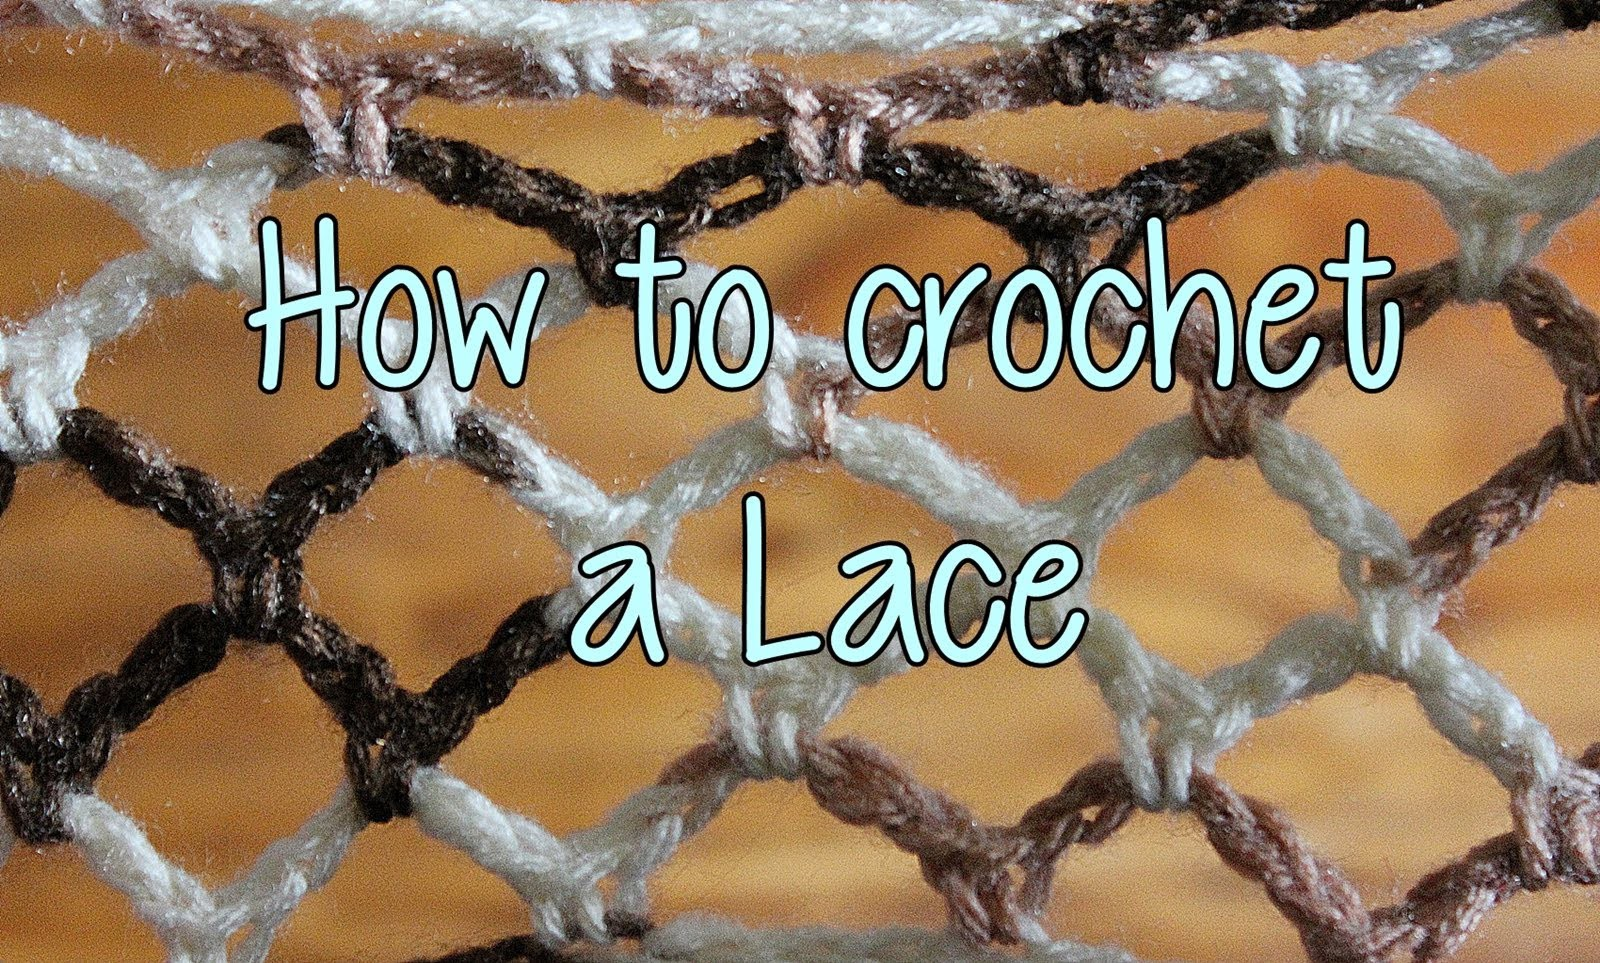 How to crochet a Basic Lace - Crochet Lessons